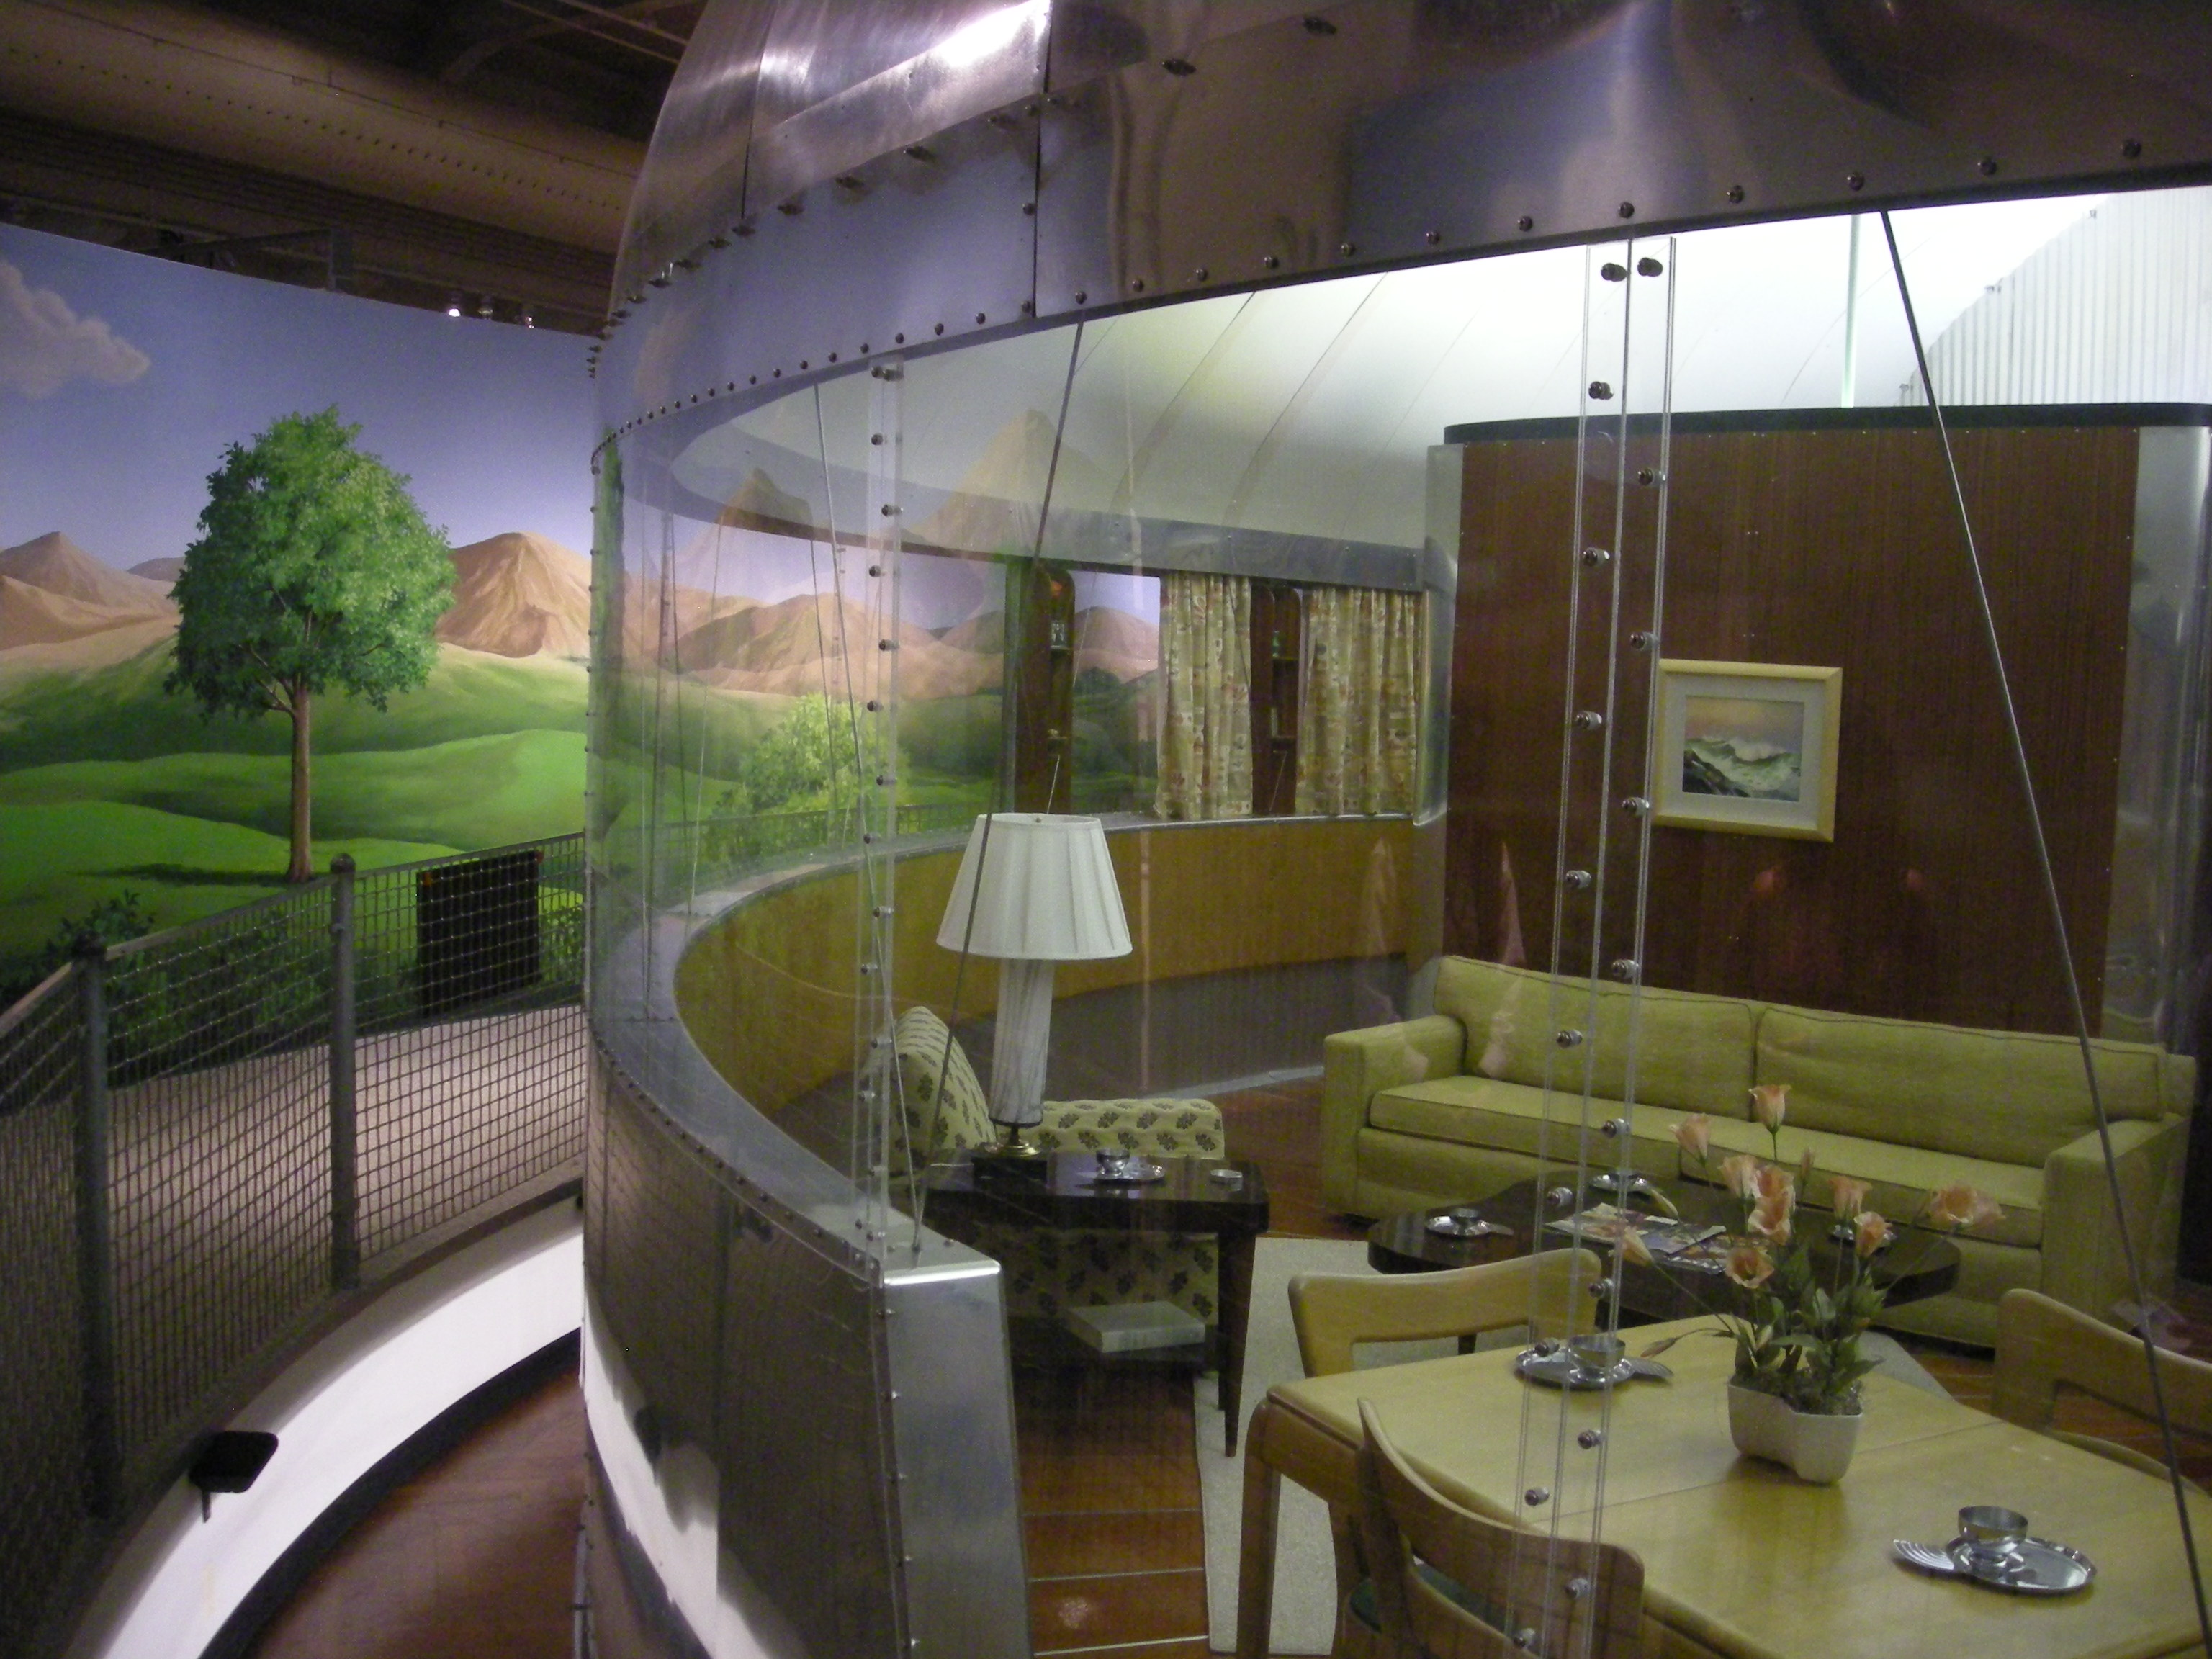 henry_ford_museum_august_2012_11_dymaxion_house